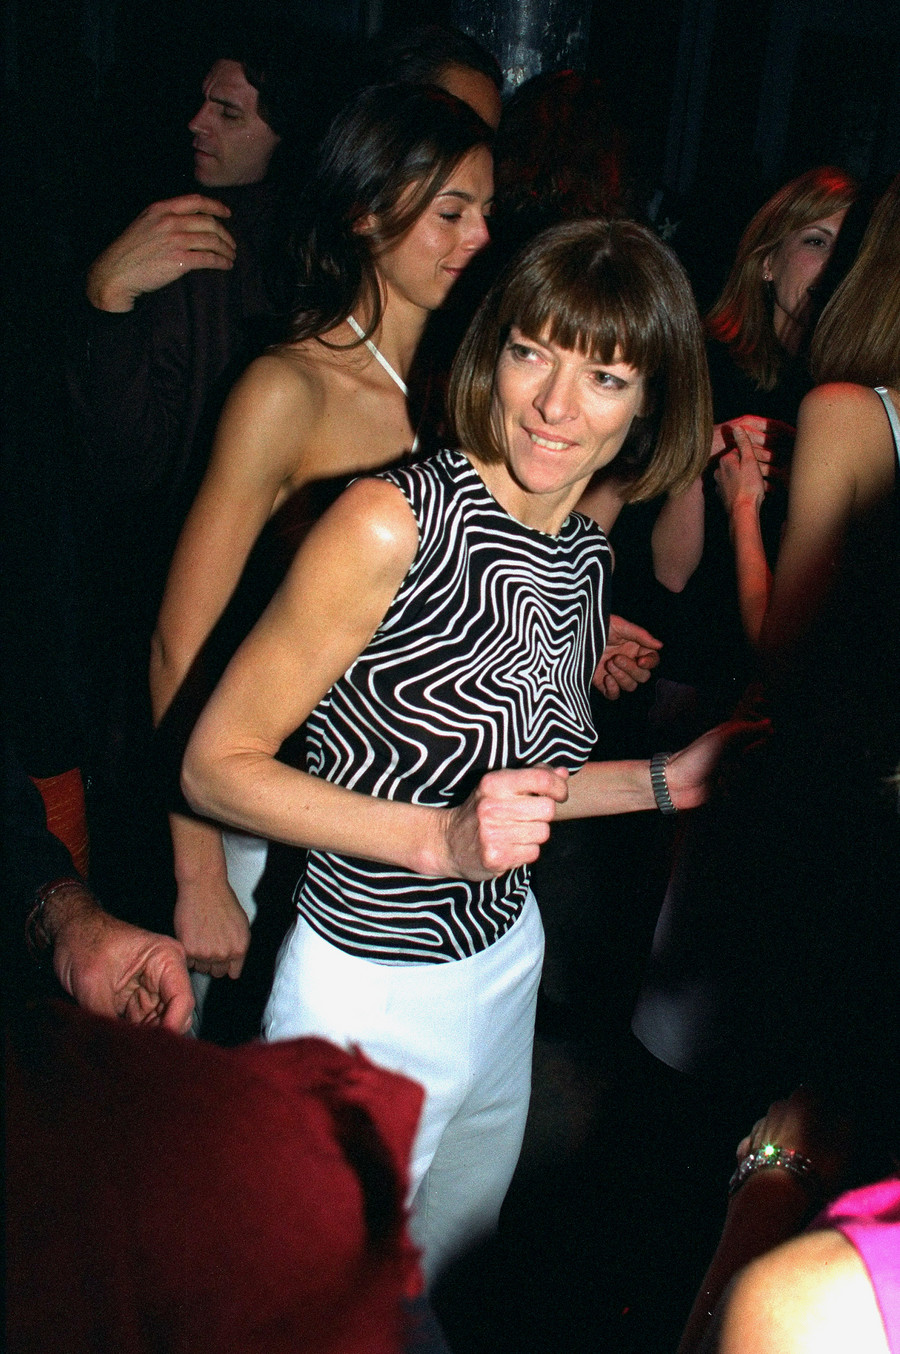 Anna Wintour / New York Daily News Archive / GettyImages